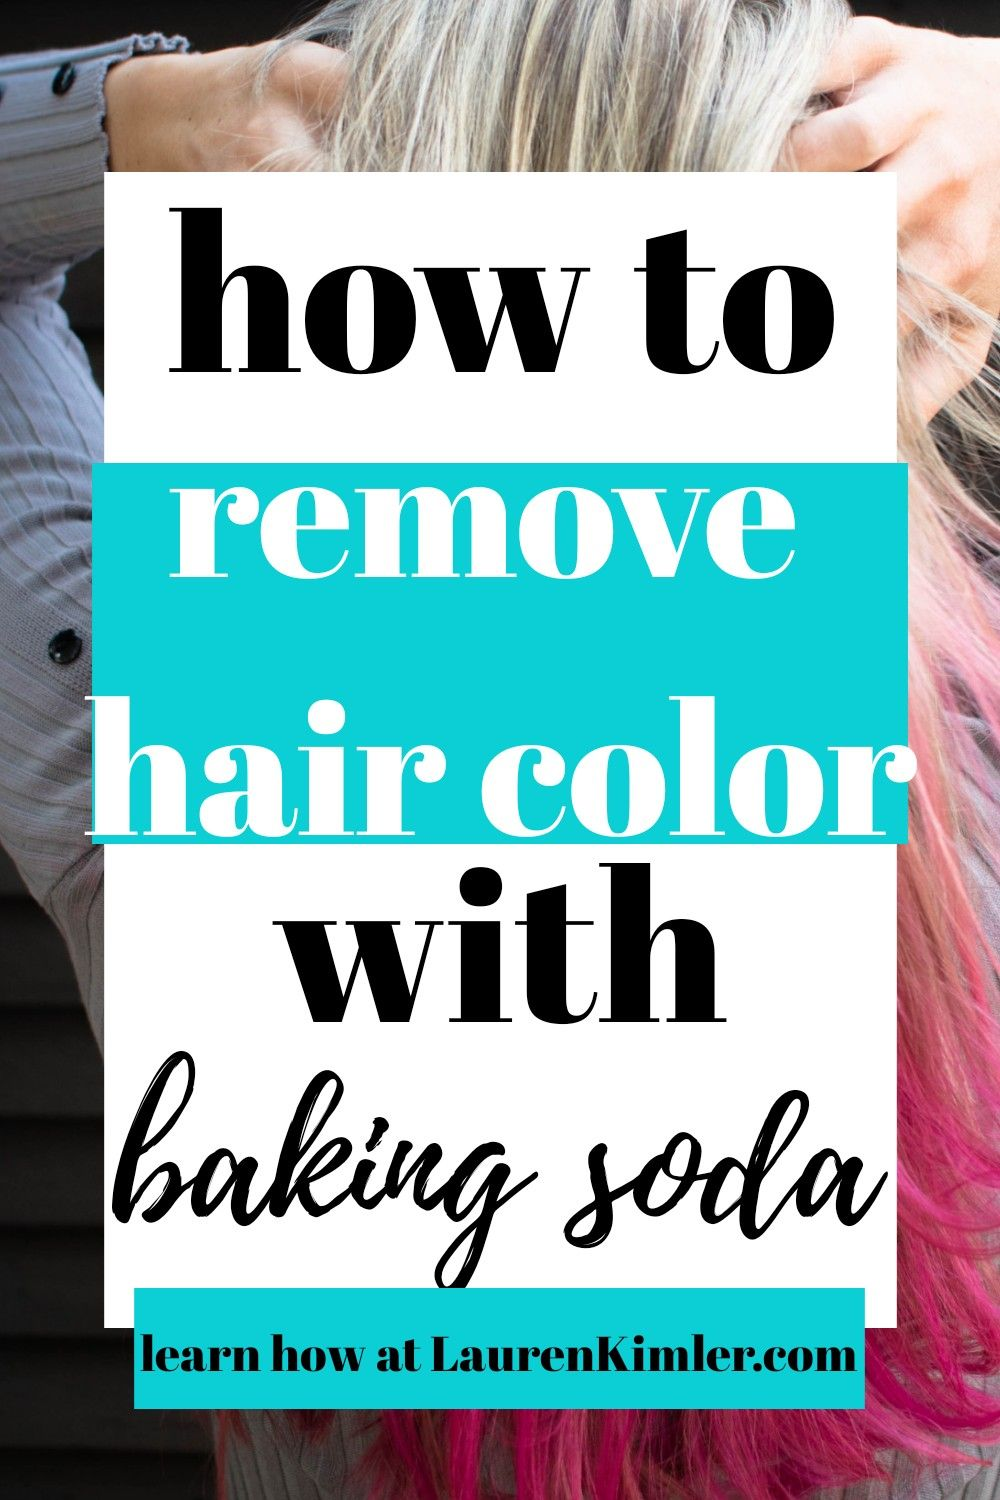 How To Remove Hair Color With Baking Soda In 2020 Hair Color Remover Diy Hair Color Remover Diy Hair Color